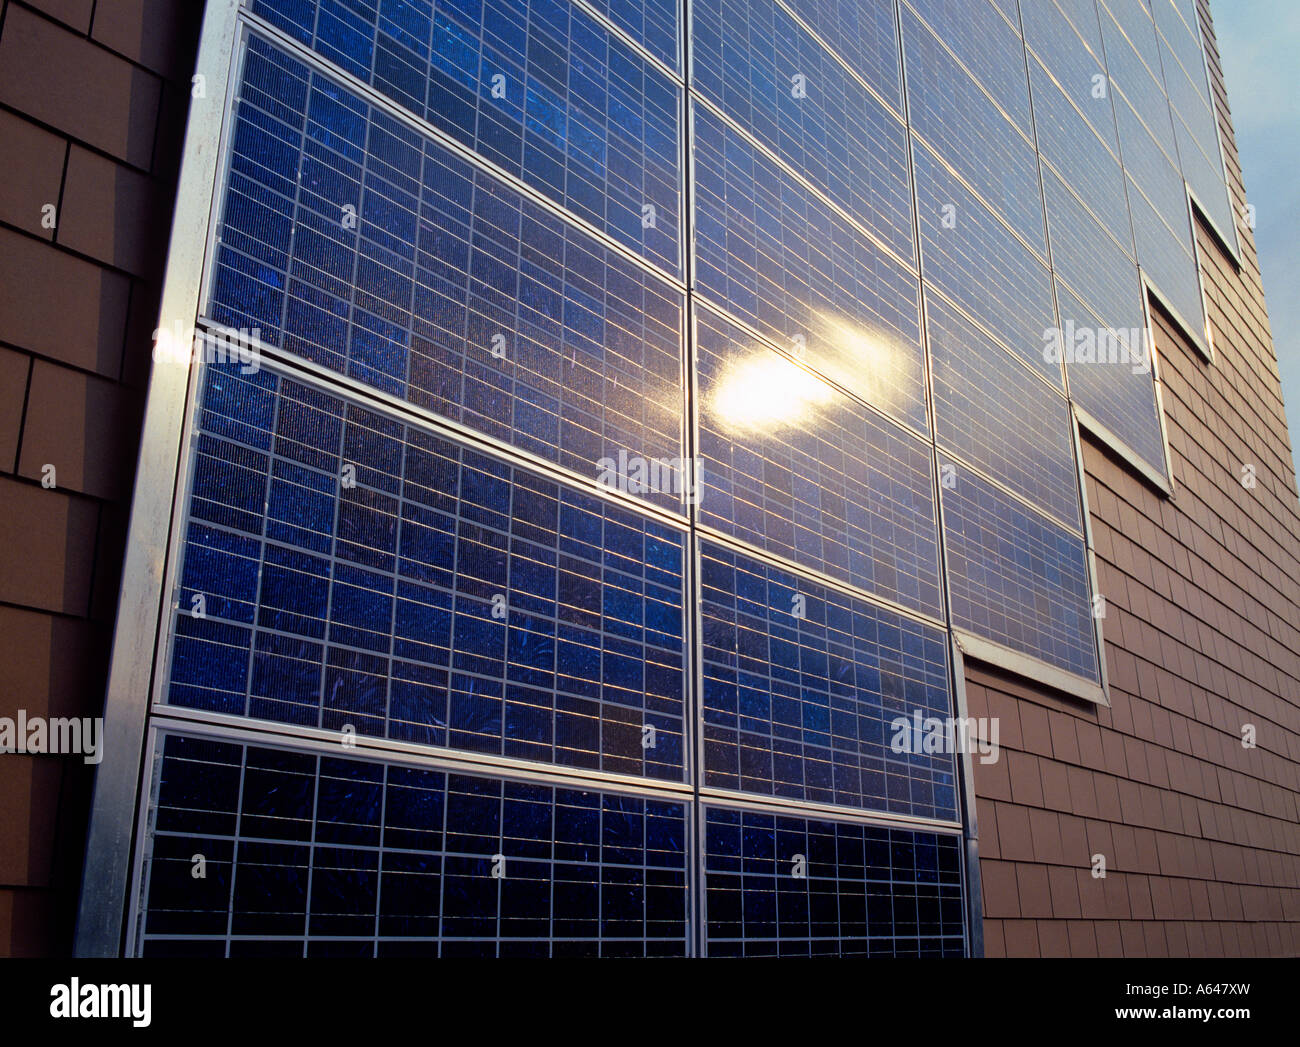 Solar Panel On Side Of Building : Solar power panels at facade of apartment building